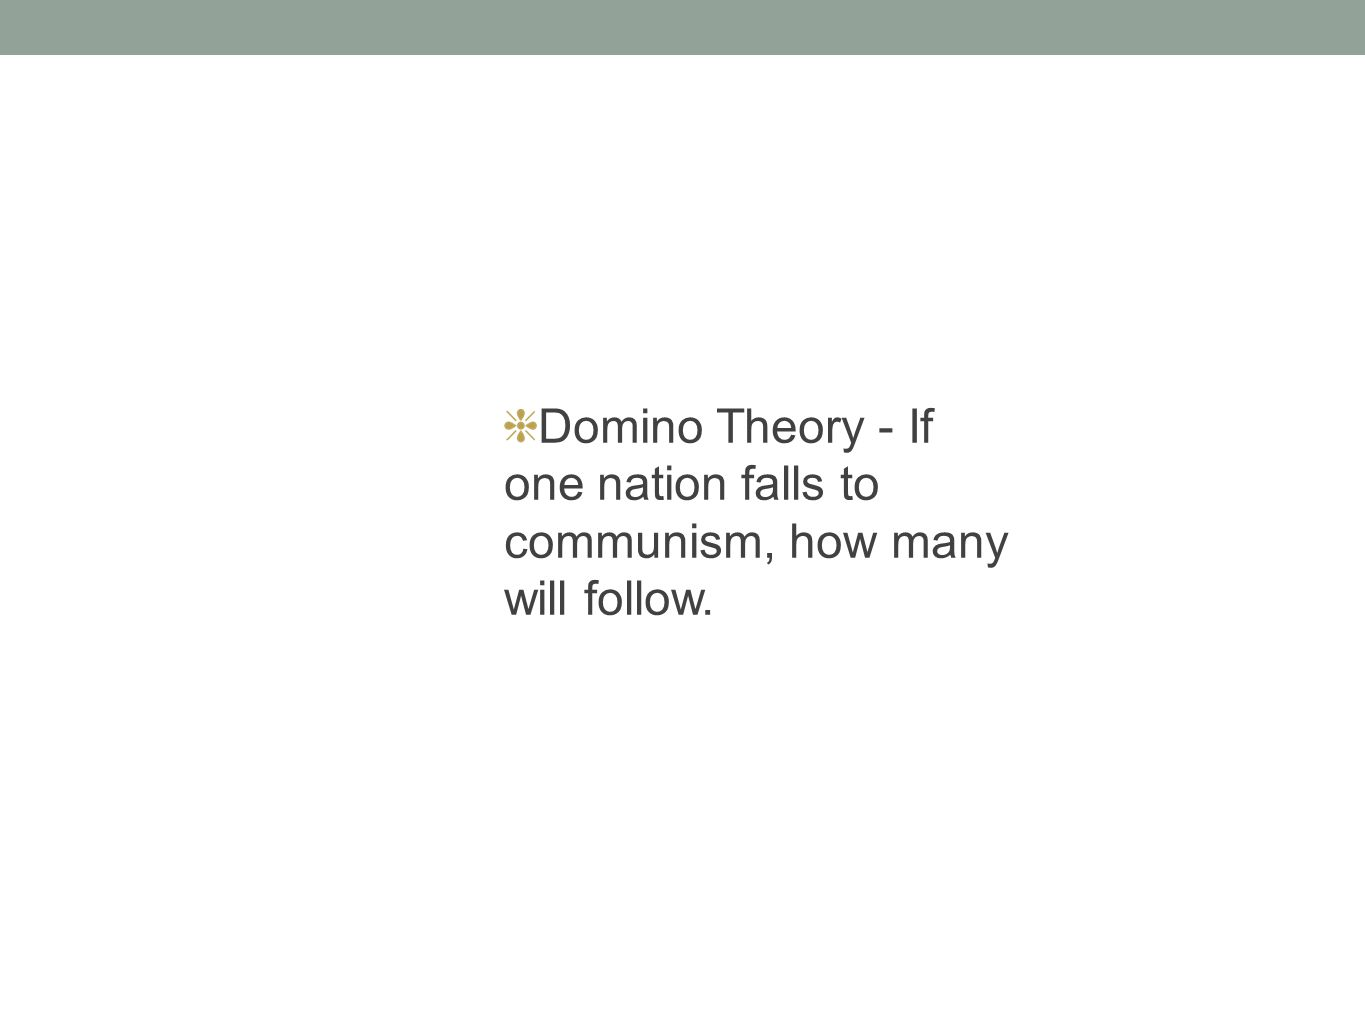 Domino Theory - If one nation falls to communism, how many will follow.